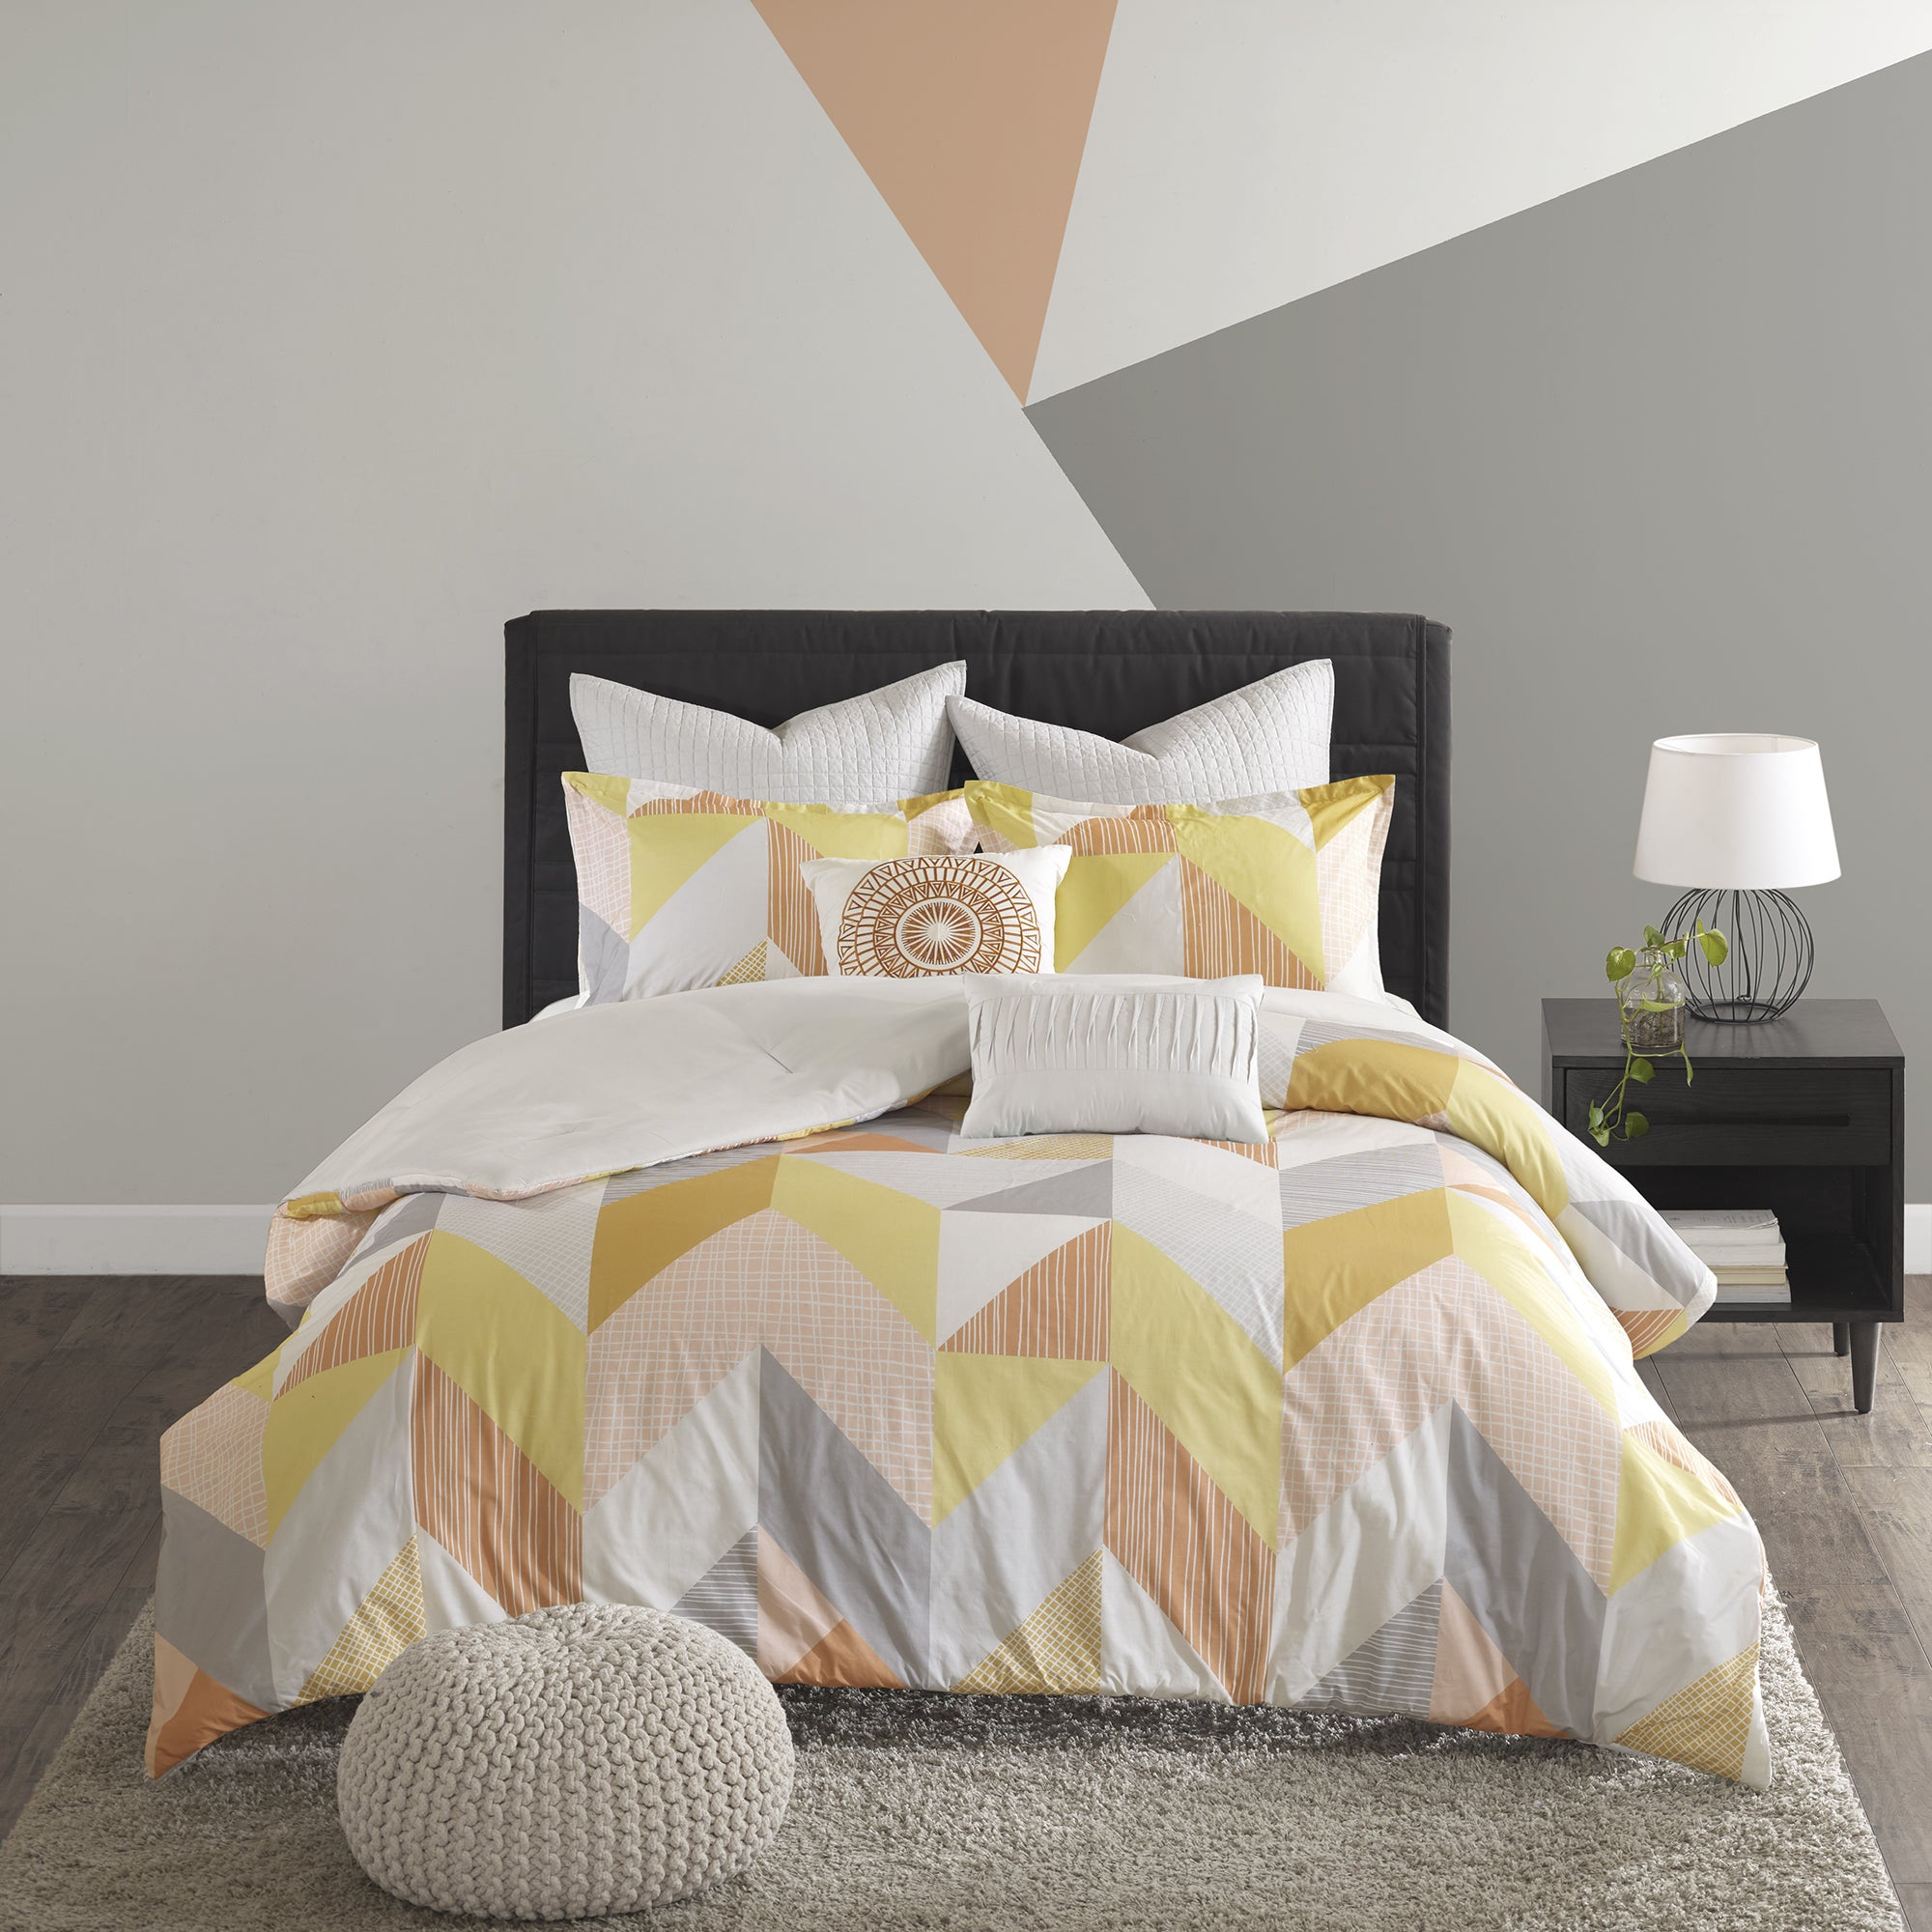 this black teenage home decor set bed comforter bedding massive likes in make green flower user bedspread modern combined many included and red queen cozy lovely fascinating small accessories size girls with interiors featured orange bedroom comfortable at design pillow comforters for your bedrooms white throw also ideas how